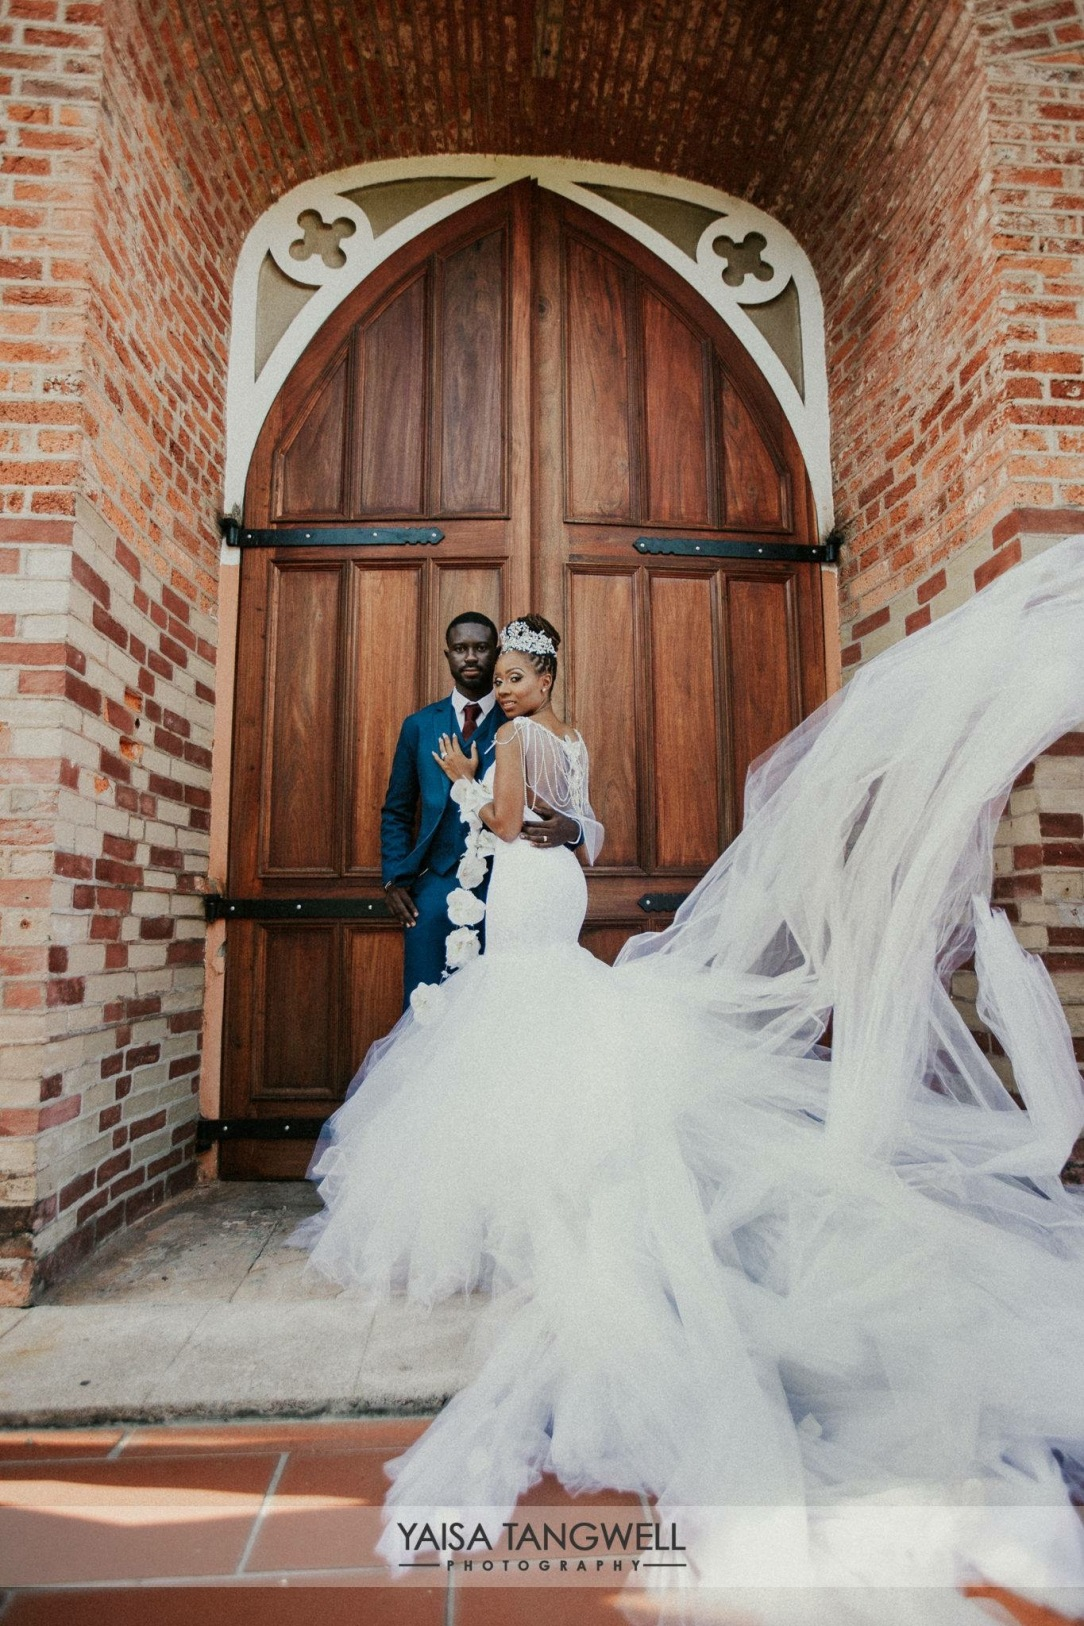 Bride Lynnel wears a custom Lauren Elaine Bridal Jasmine wedding dress gown with cathedral tulle train and crown blowing in the wind